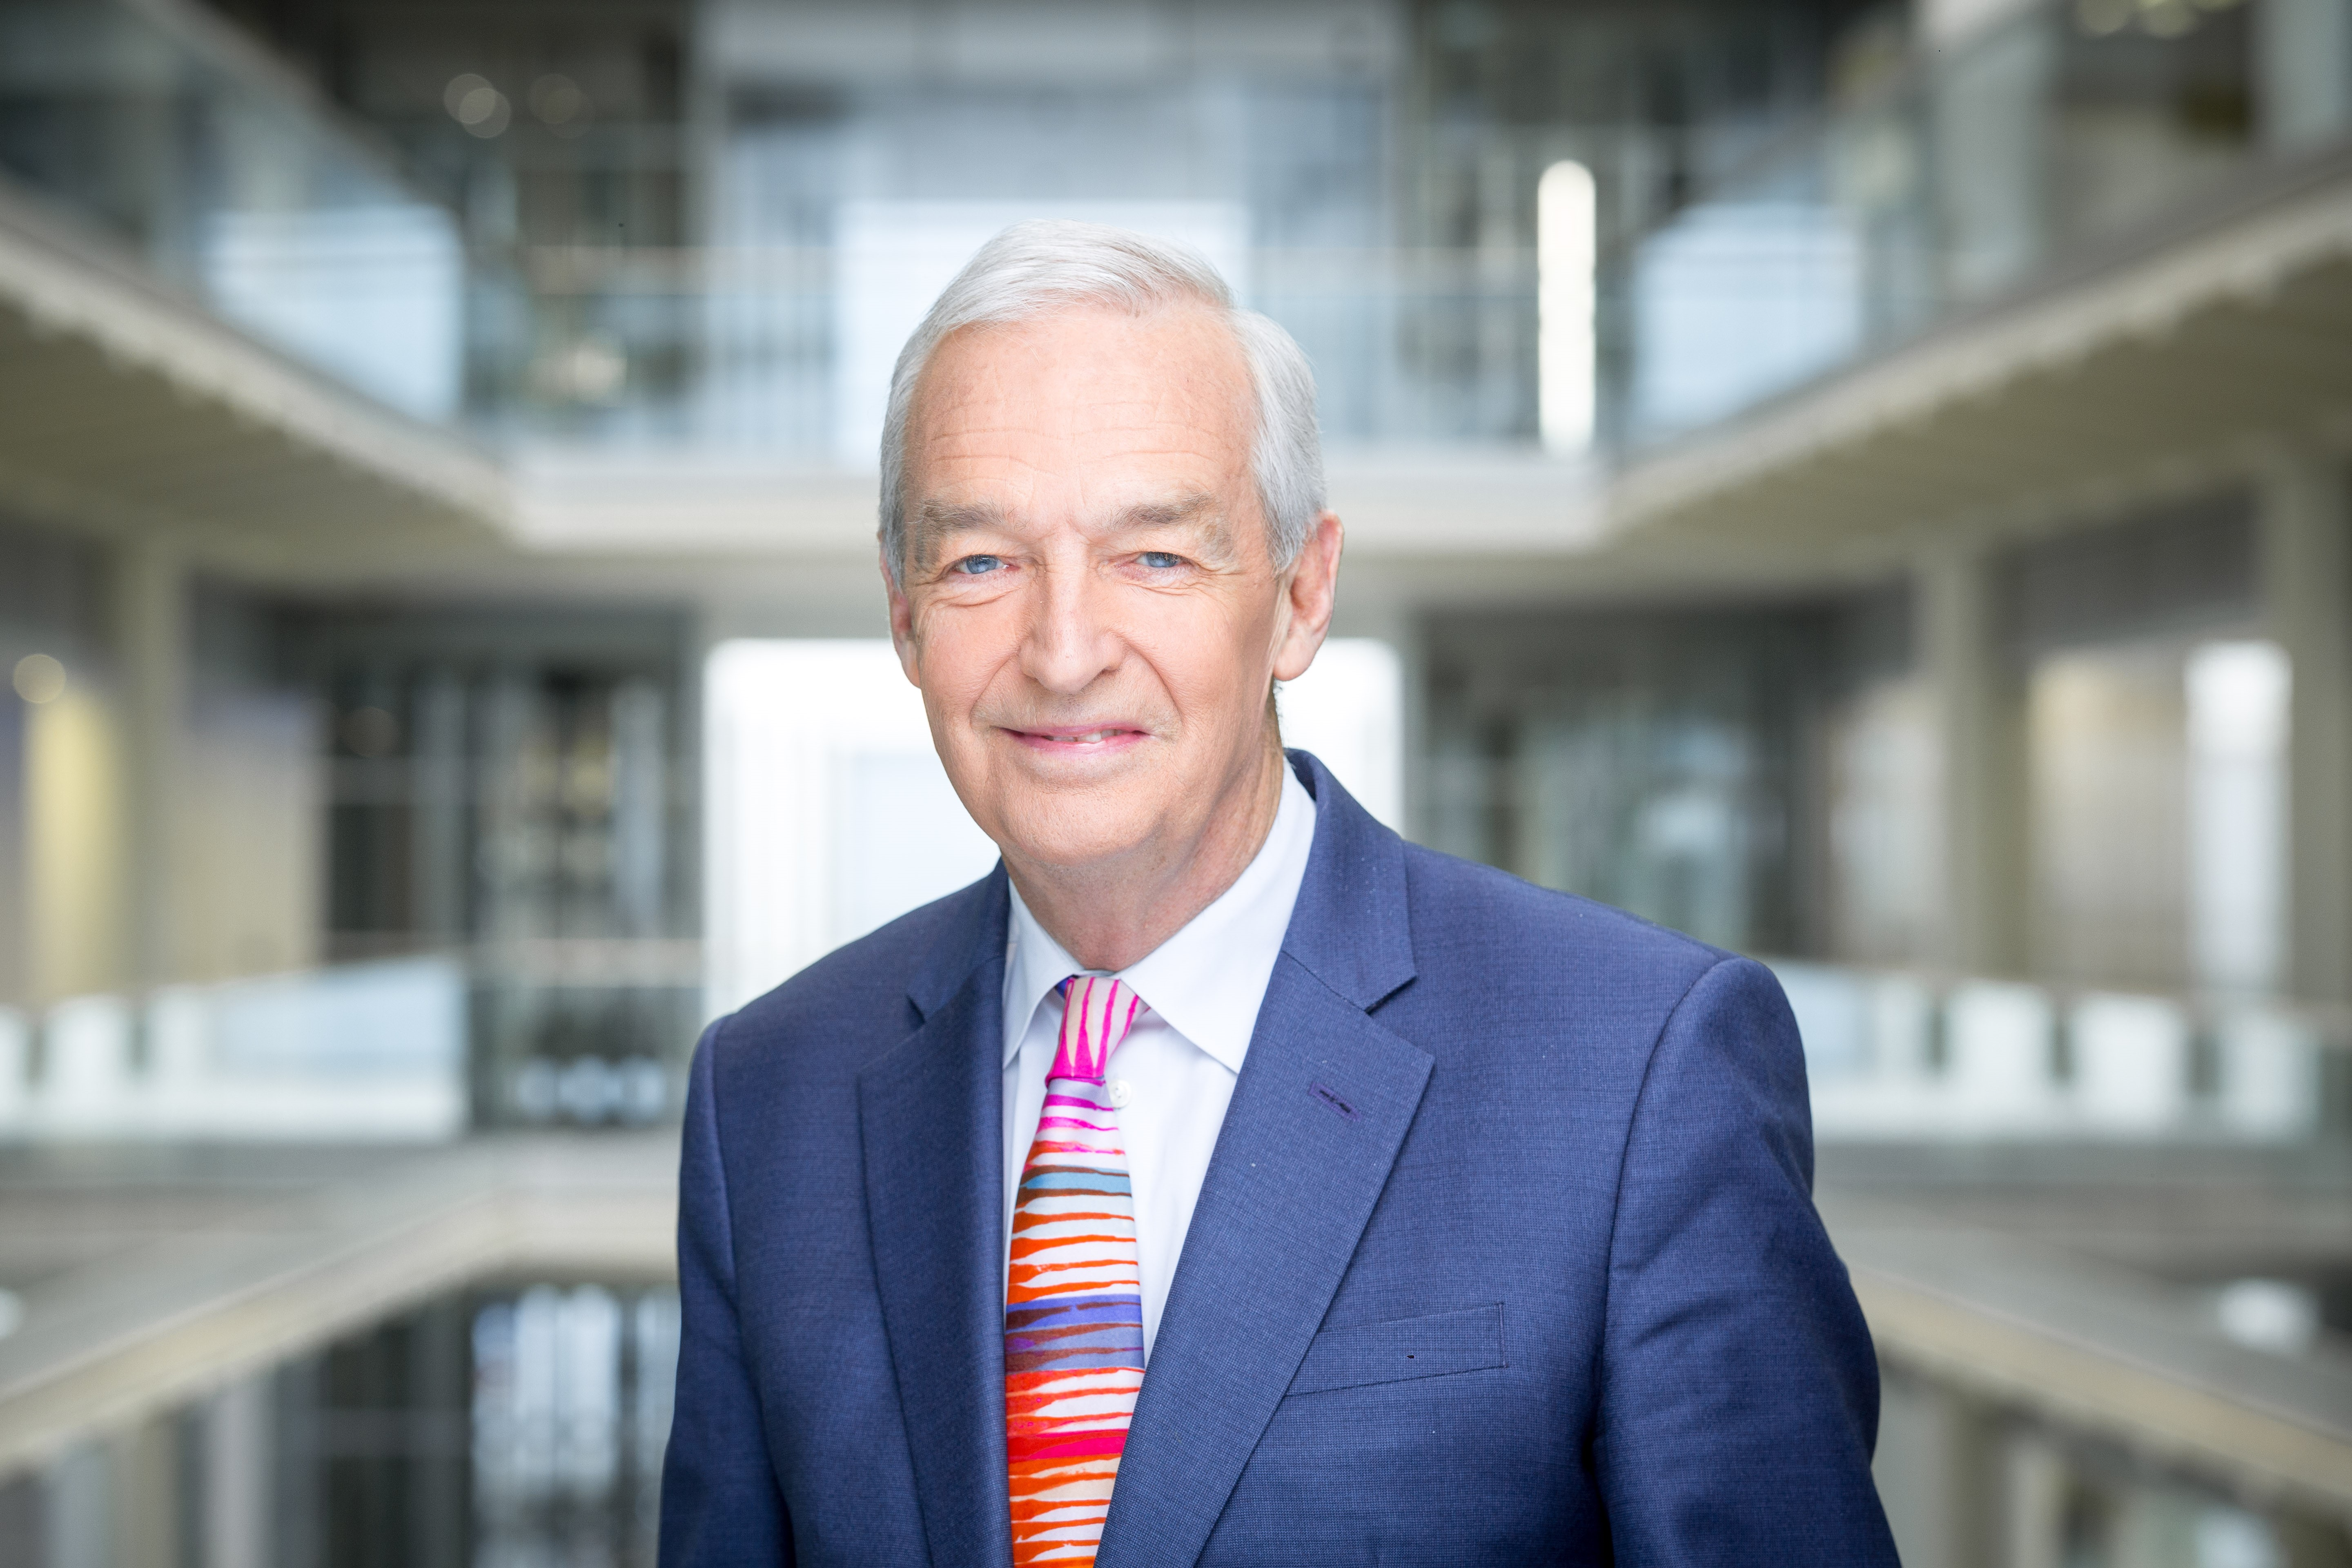 Image for Channel 4 newscaster to deliver Chamber's conference keynote